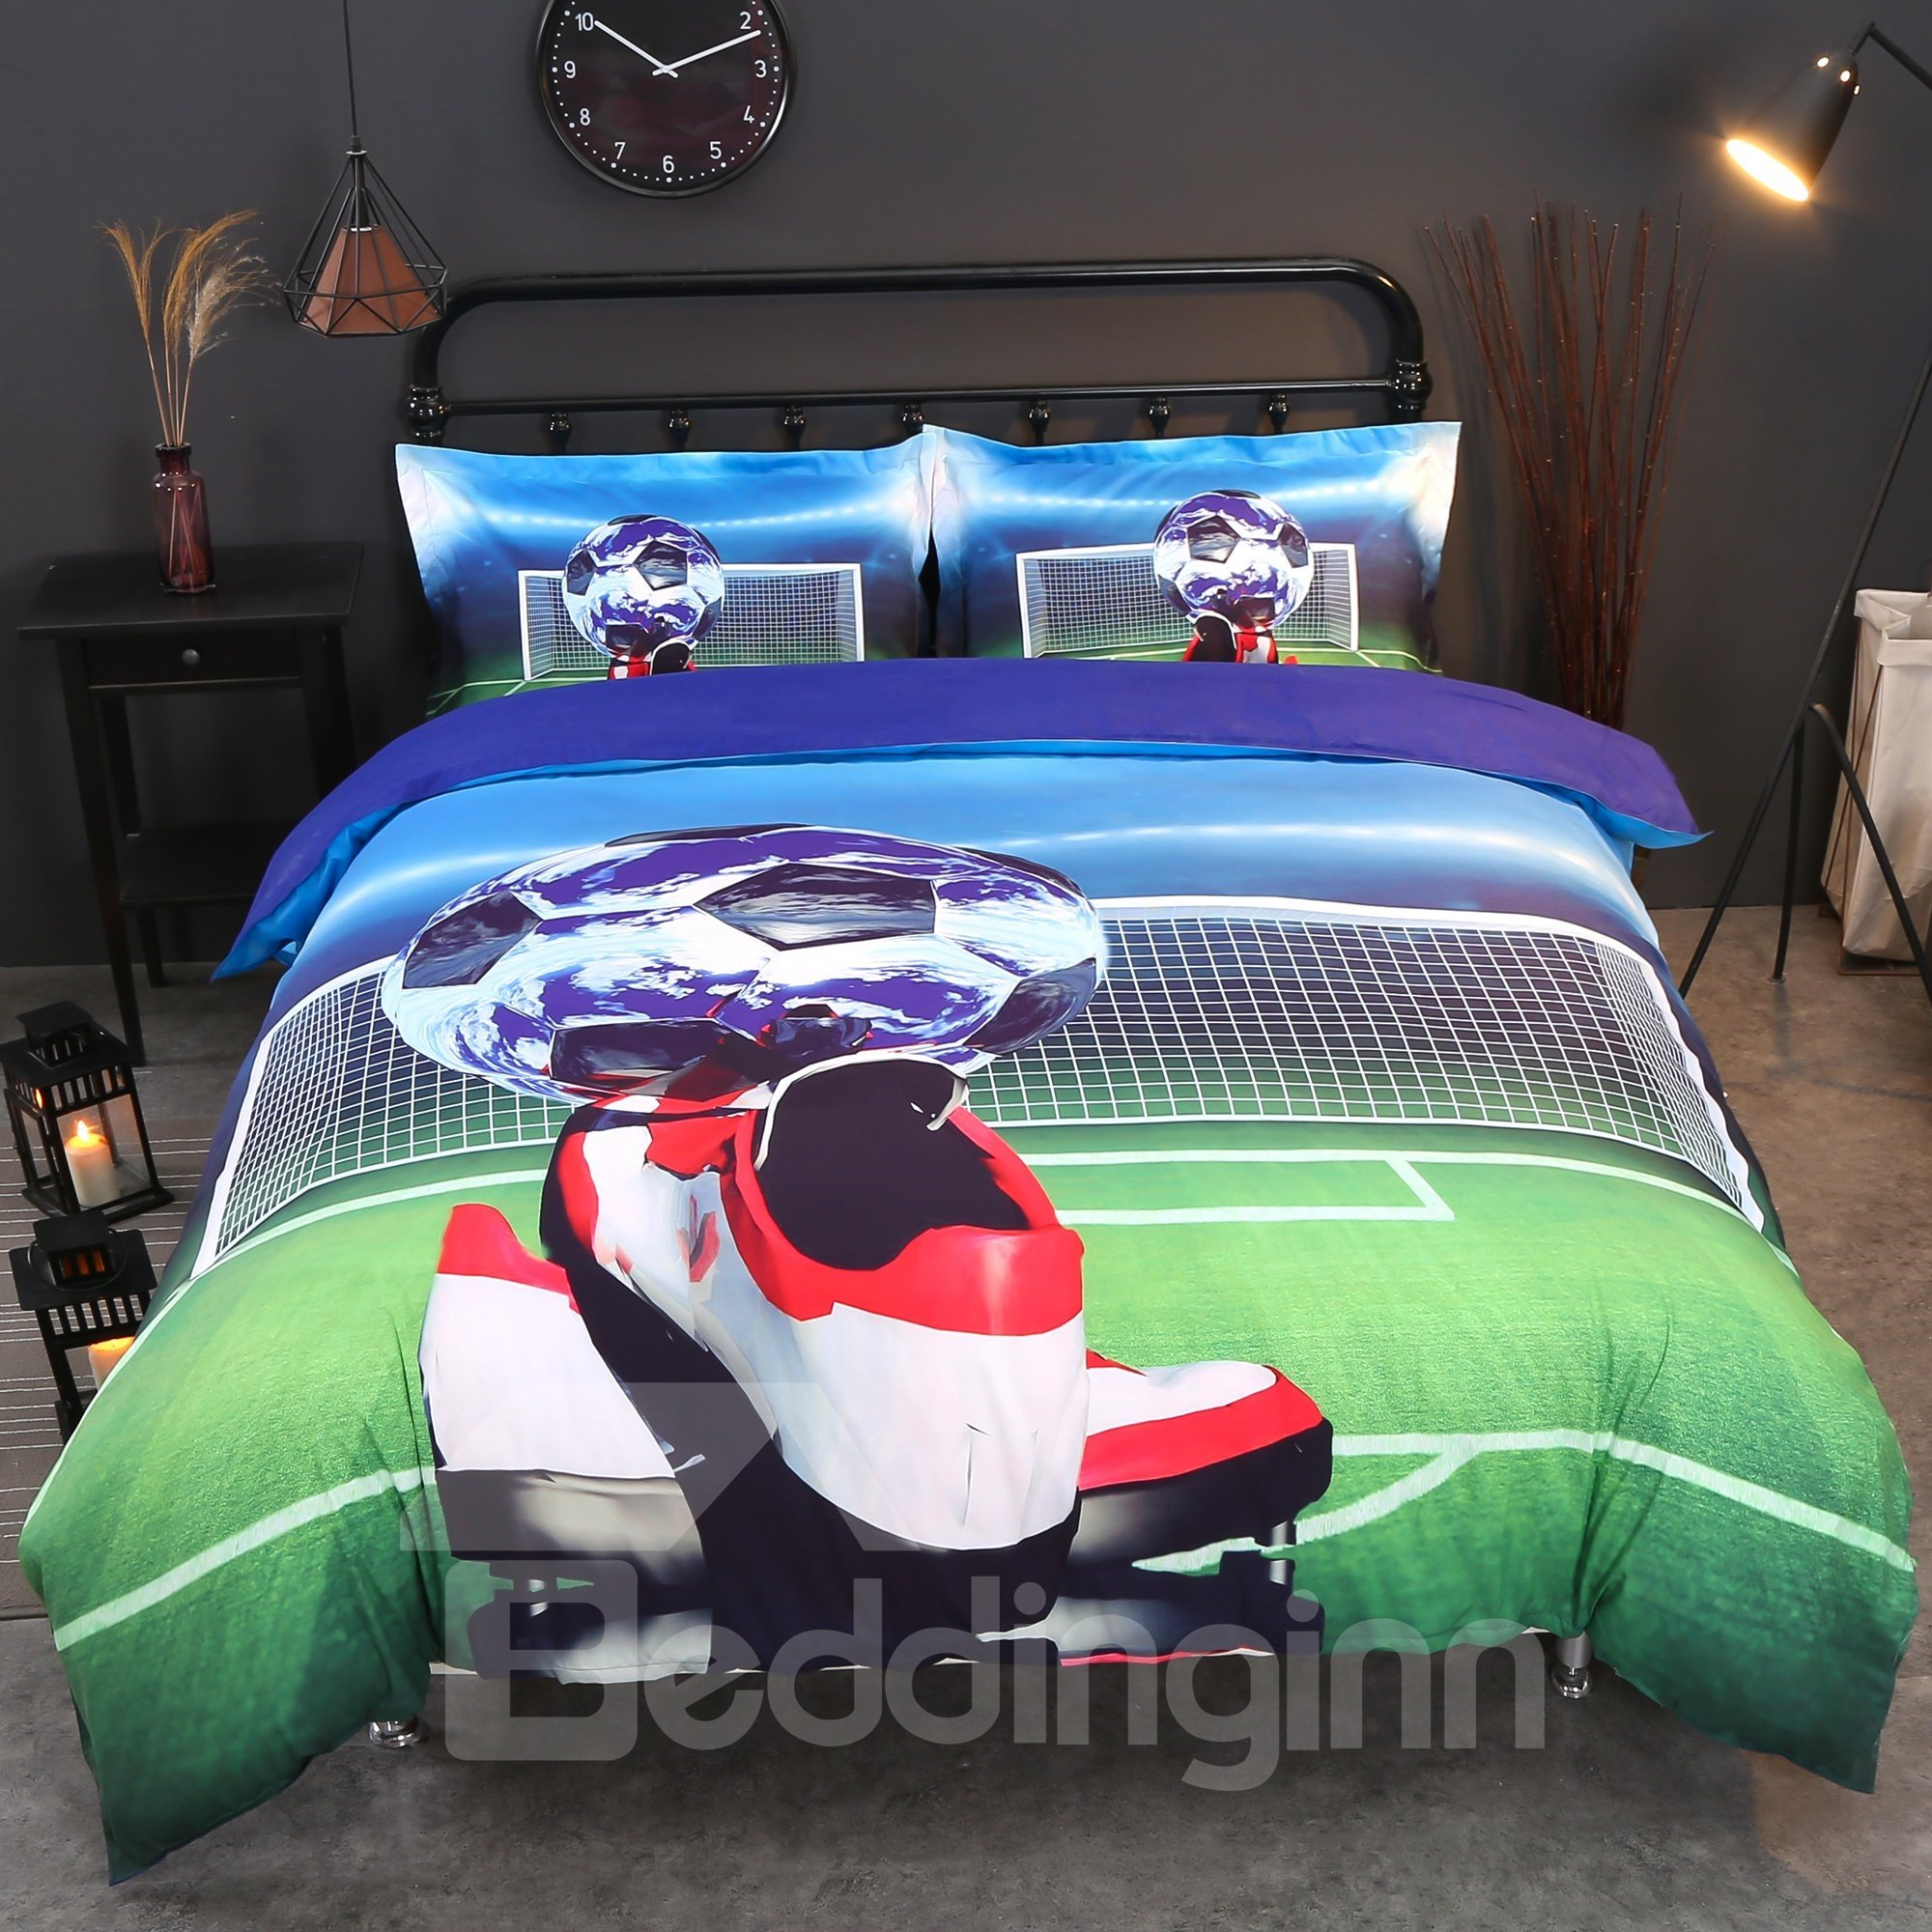 57 Onlwe 3D Soccer Ball And Shoes Printed Cotton 4 Piece Bedding Sets/Duvet  Covers